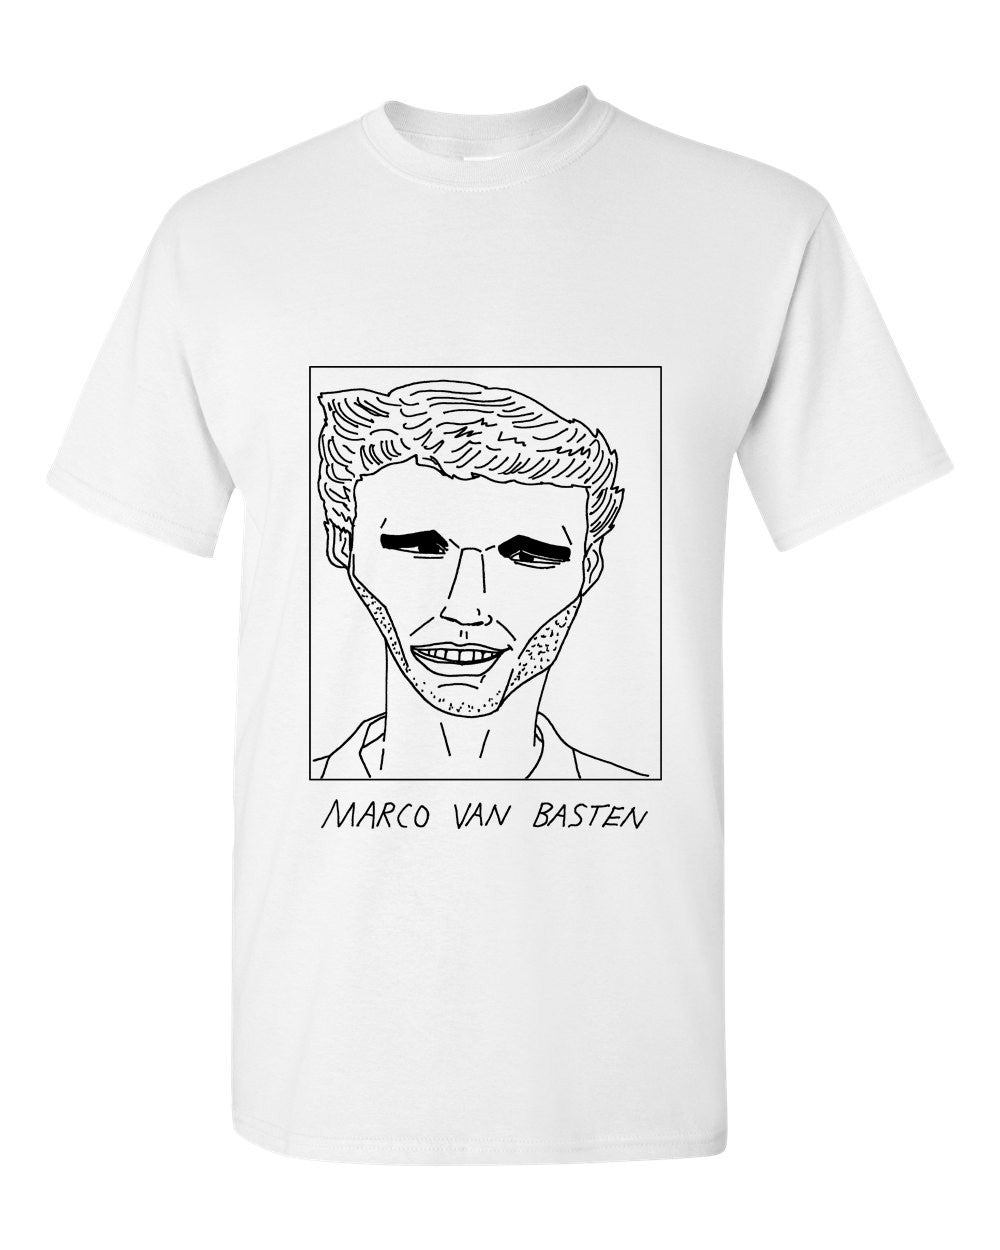 Badly Drawn Marco van Basten T-shirt